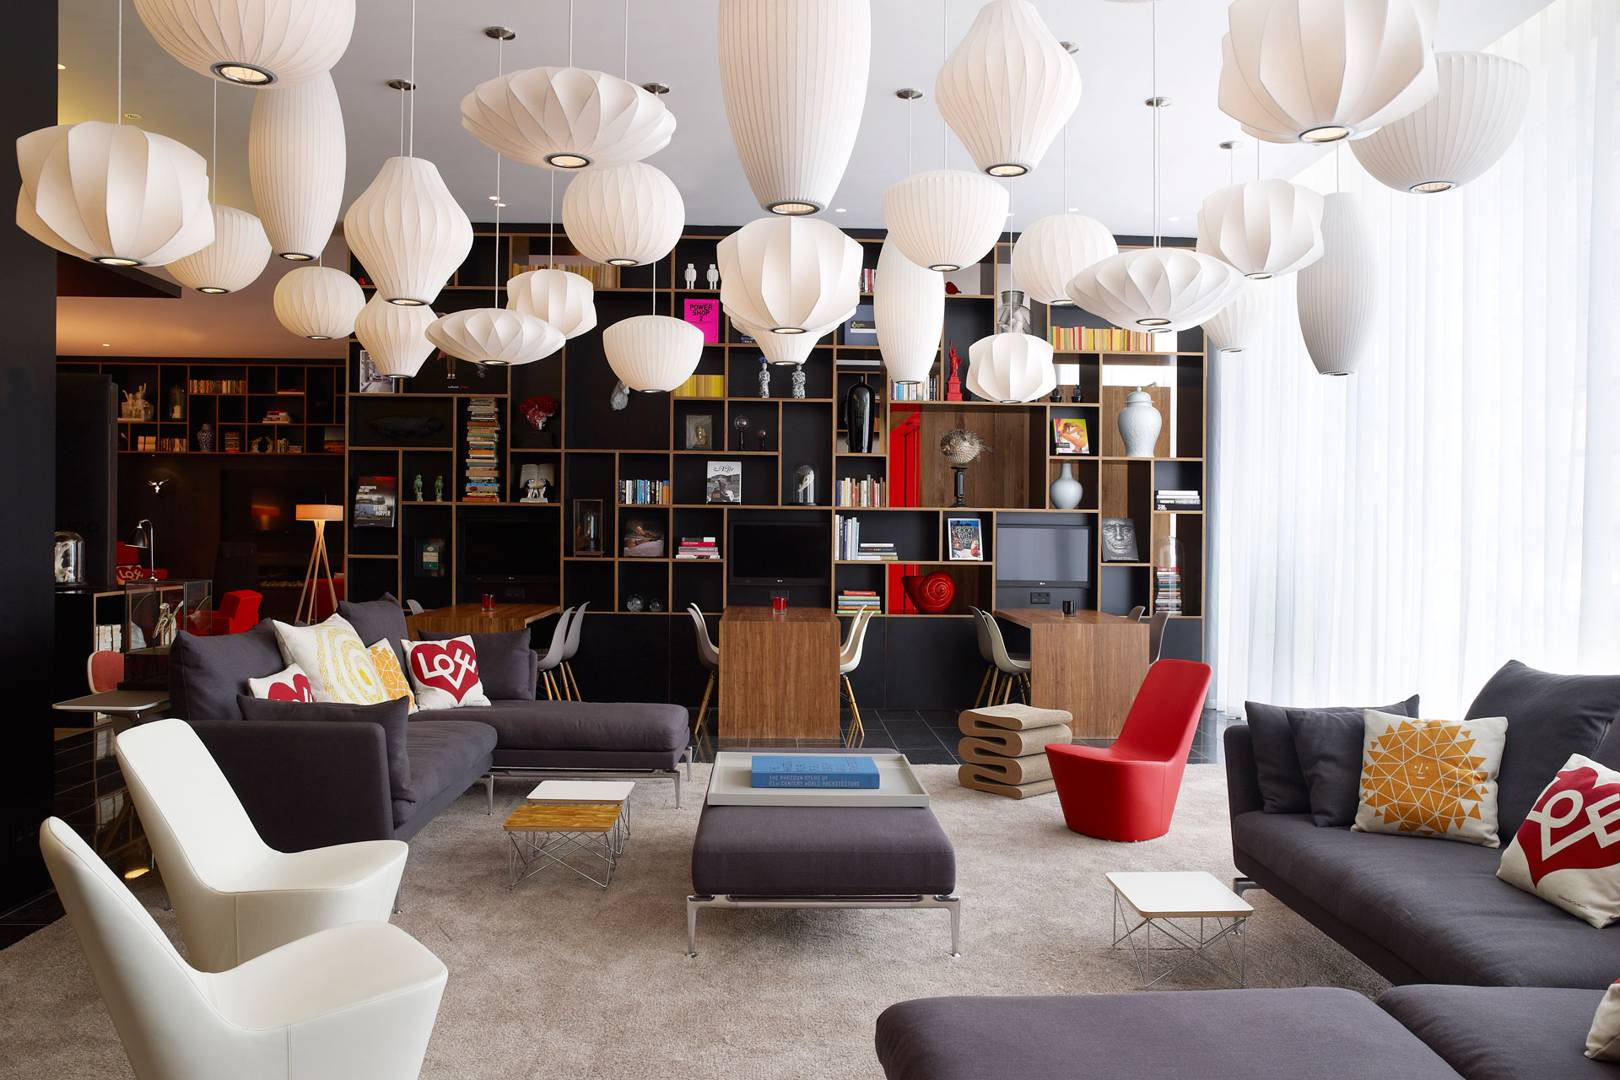 CitizenM Bankside hotel opens in South London | CN Traveller